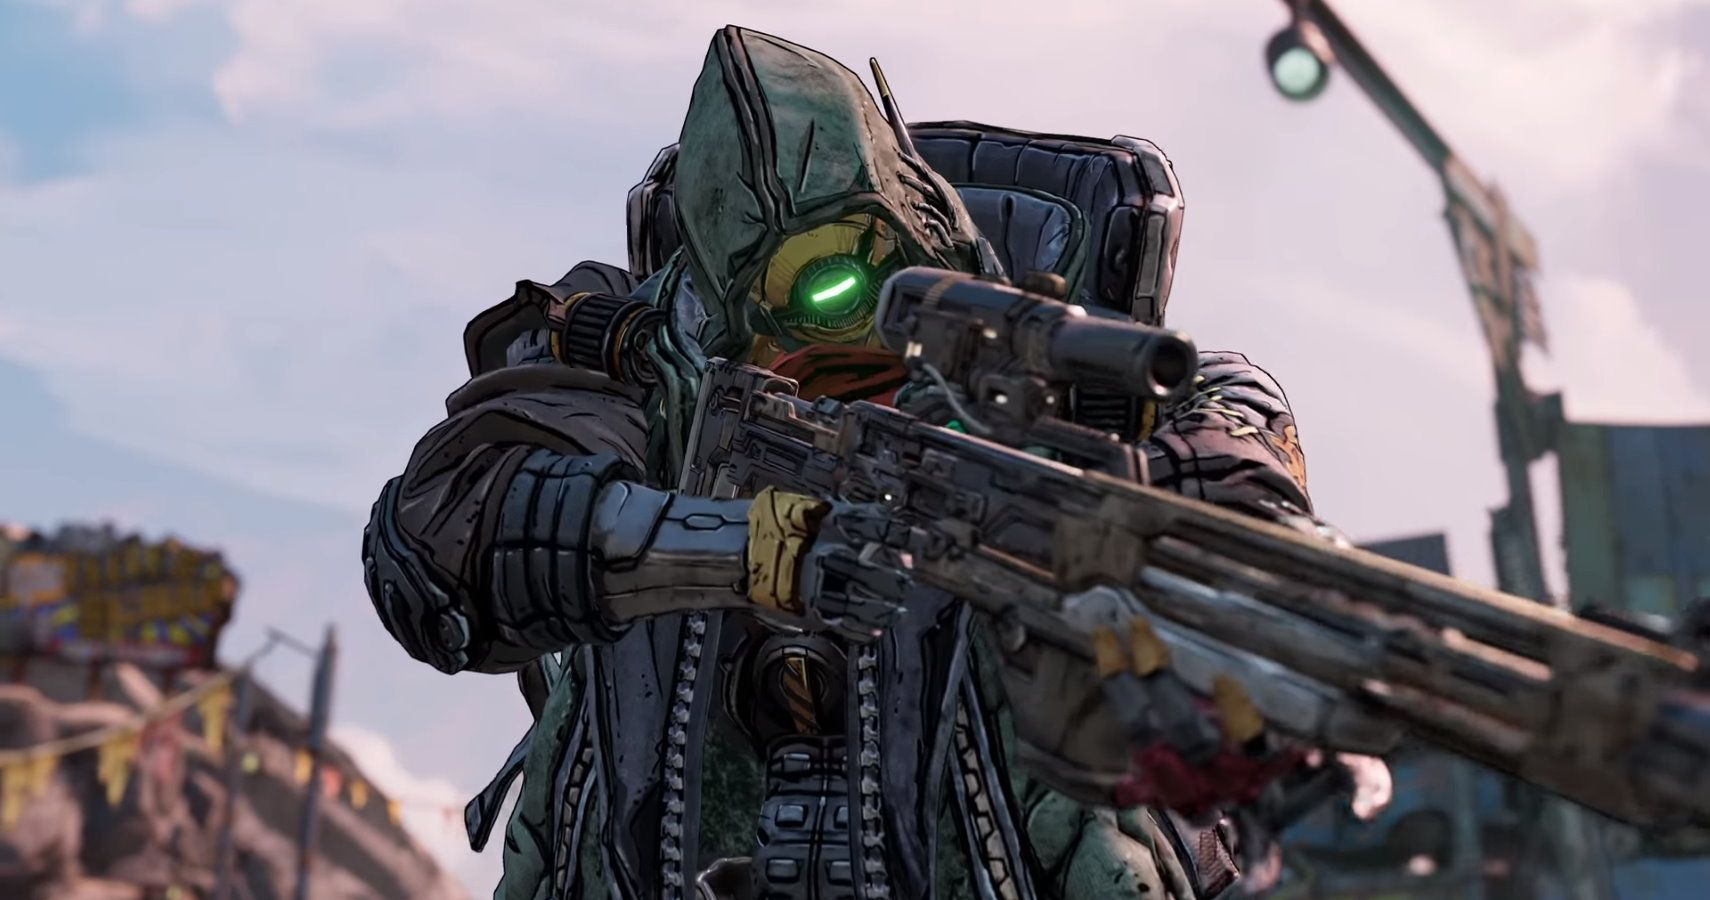 Final Borderlands 3 Character Trailer Highlights FL4K And His Three Beasts